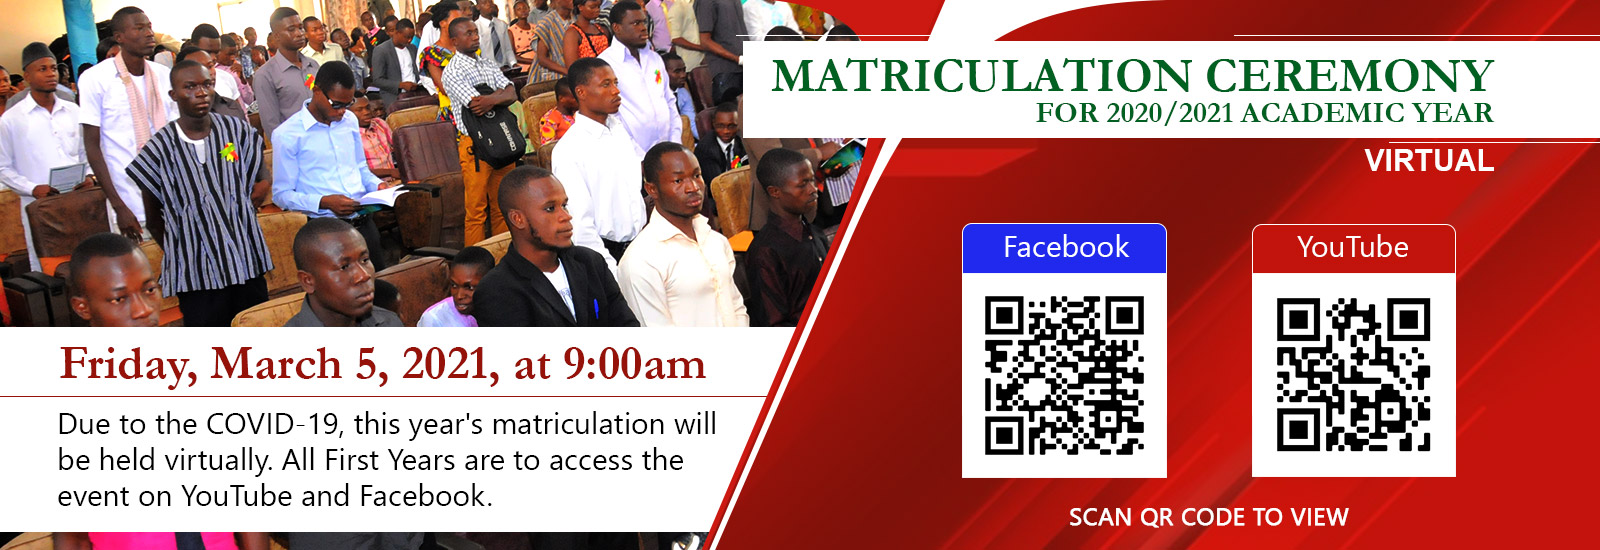 Matriculation Ceremony For 2020/2021 Academic Year